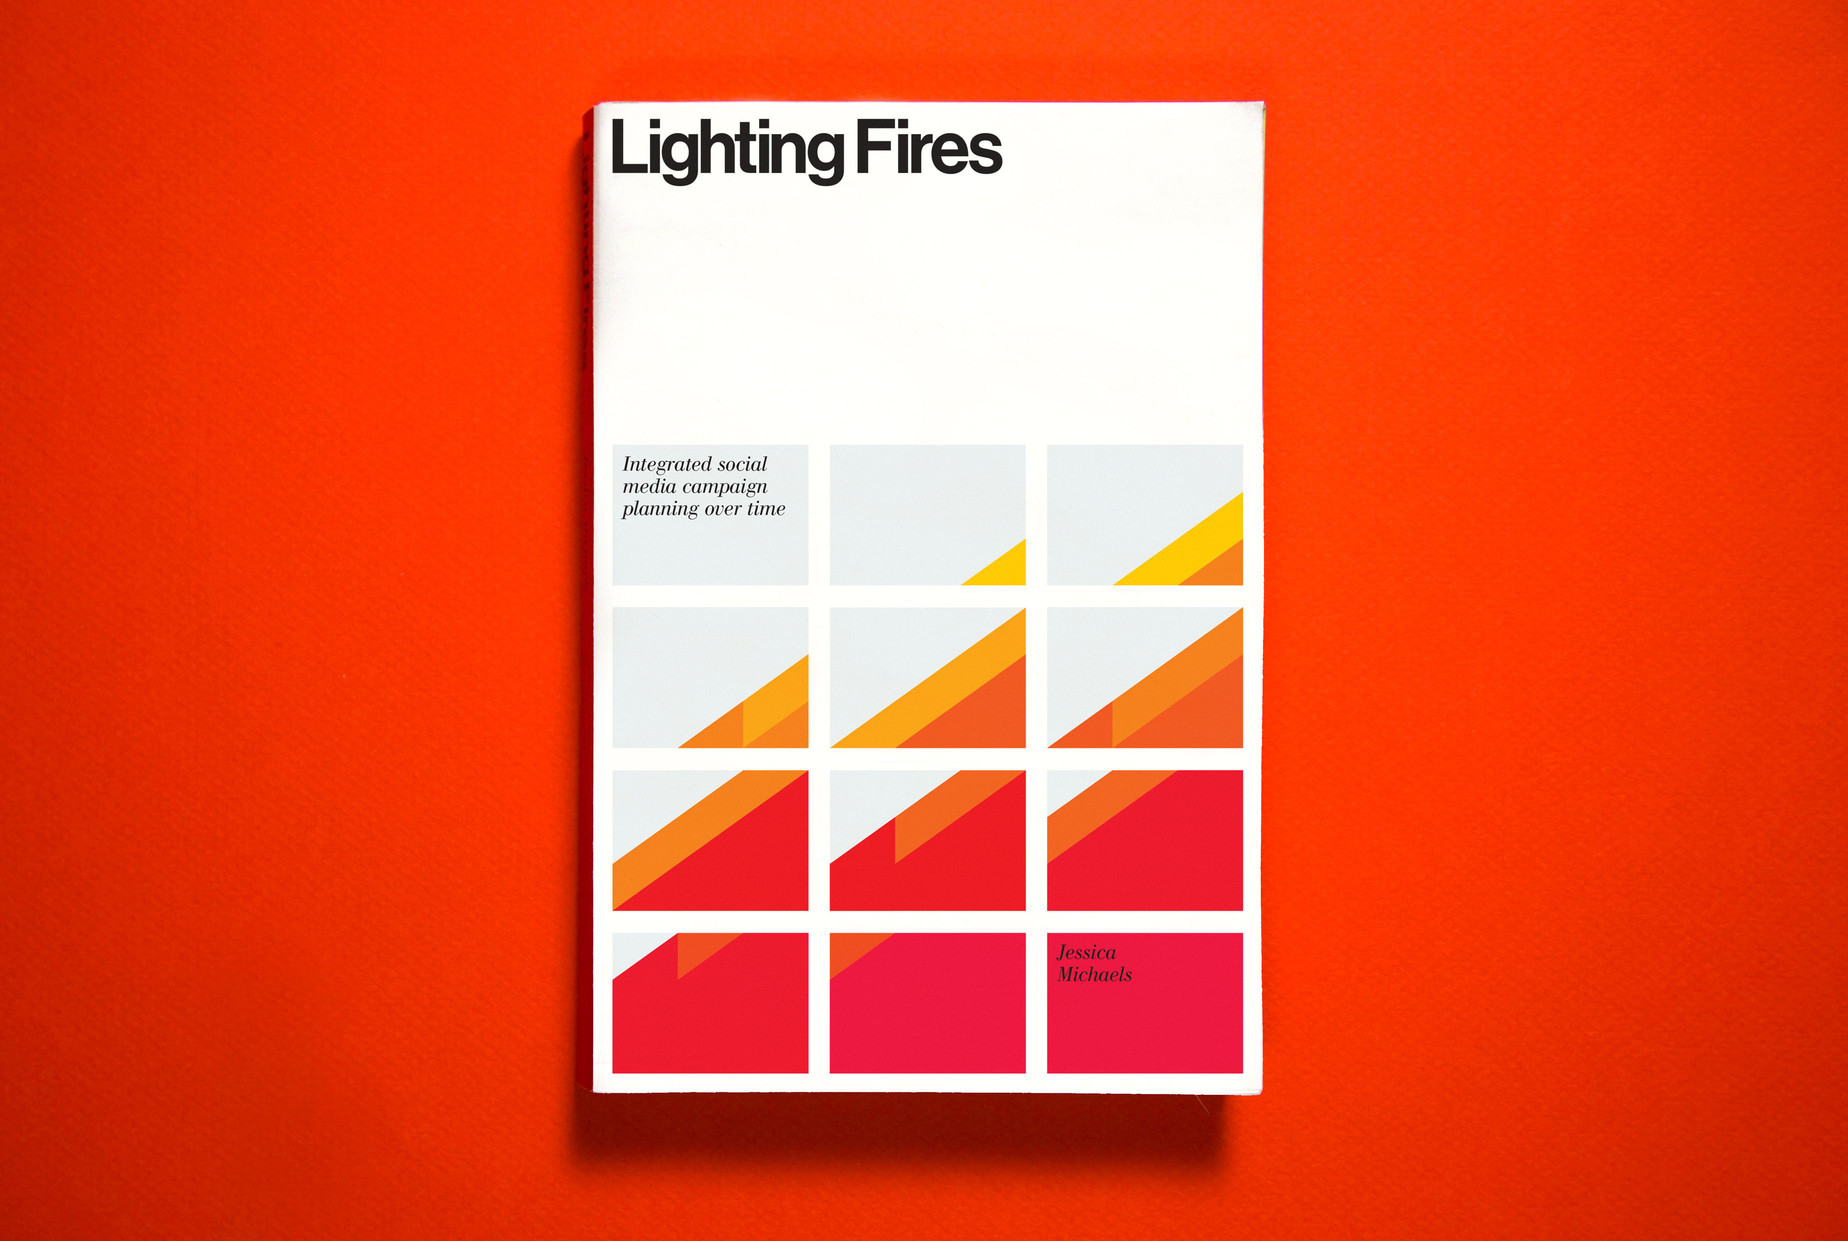 Lighting Fires - Identity project image